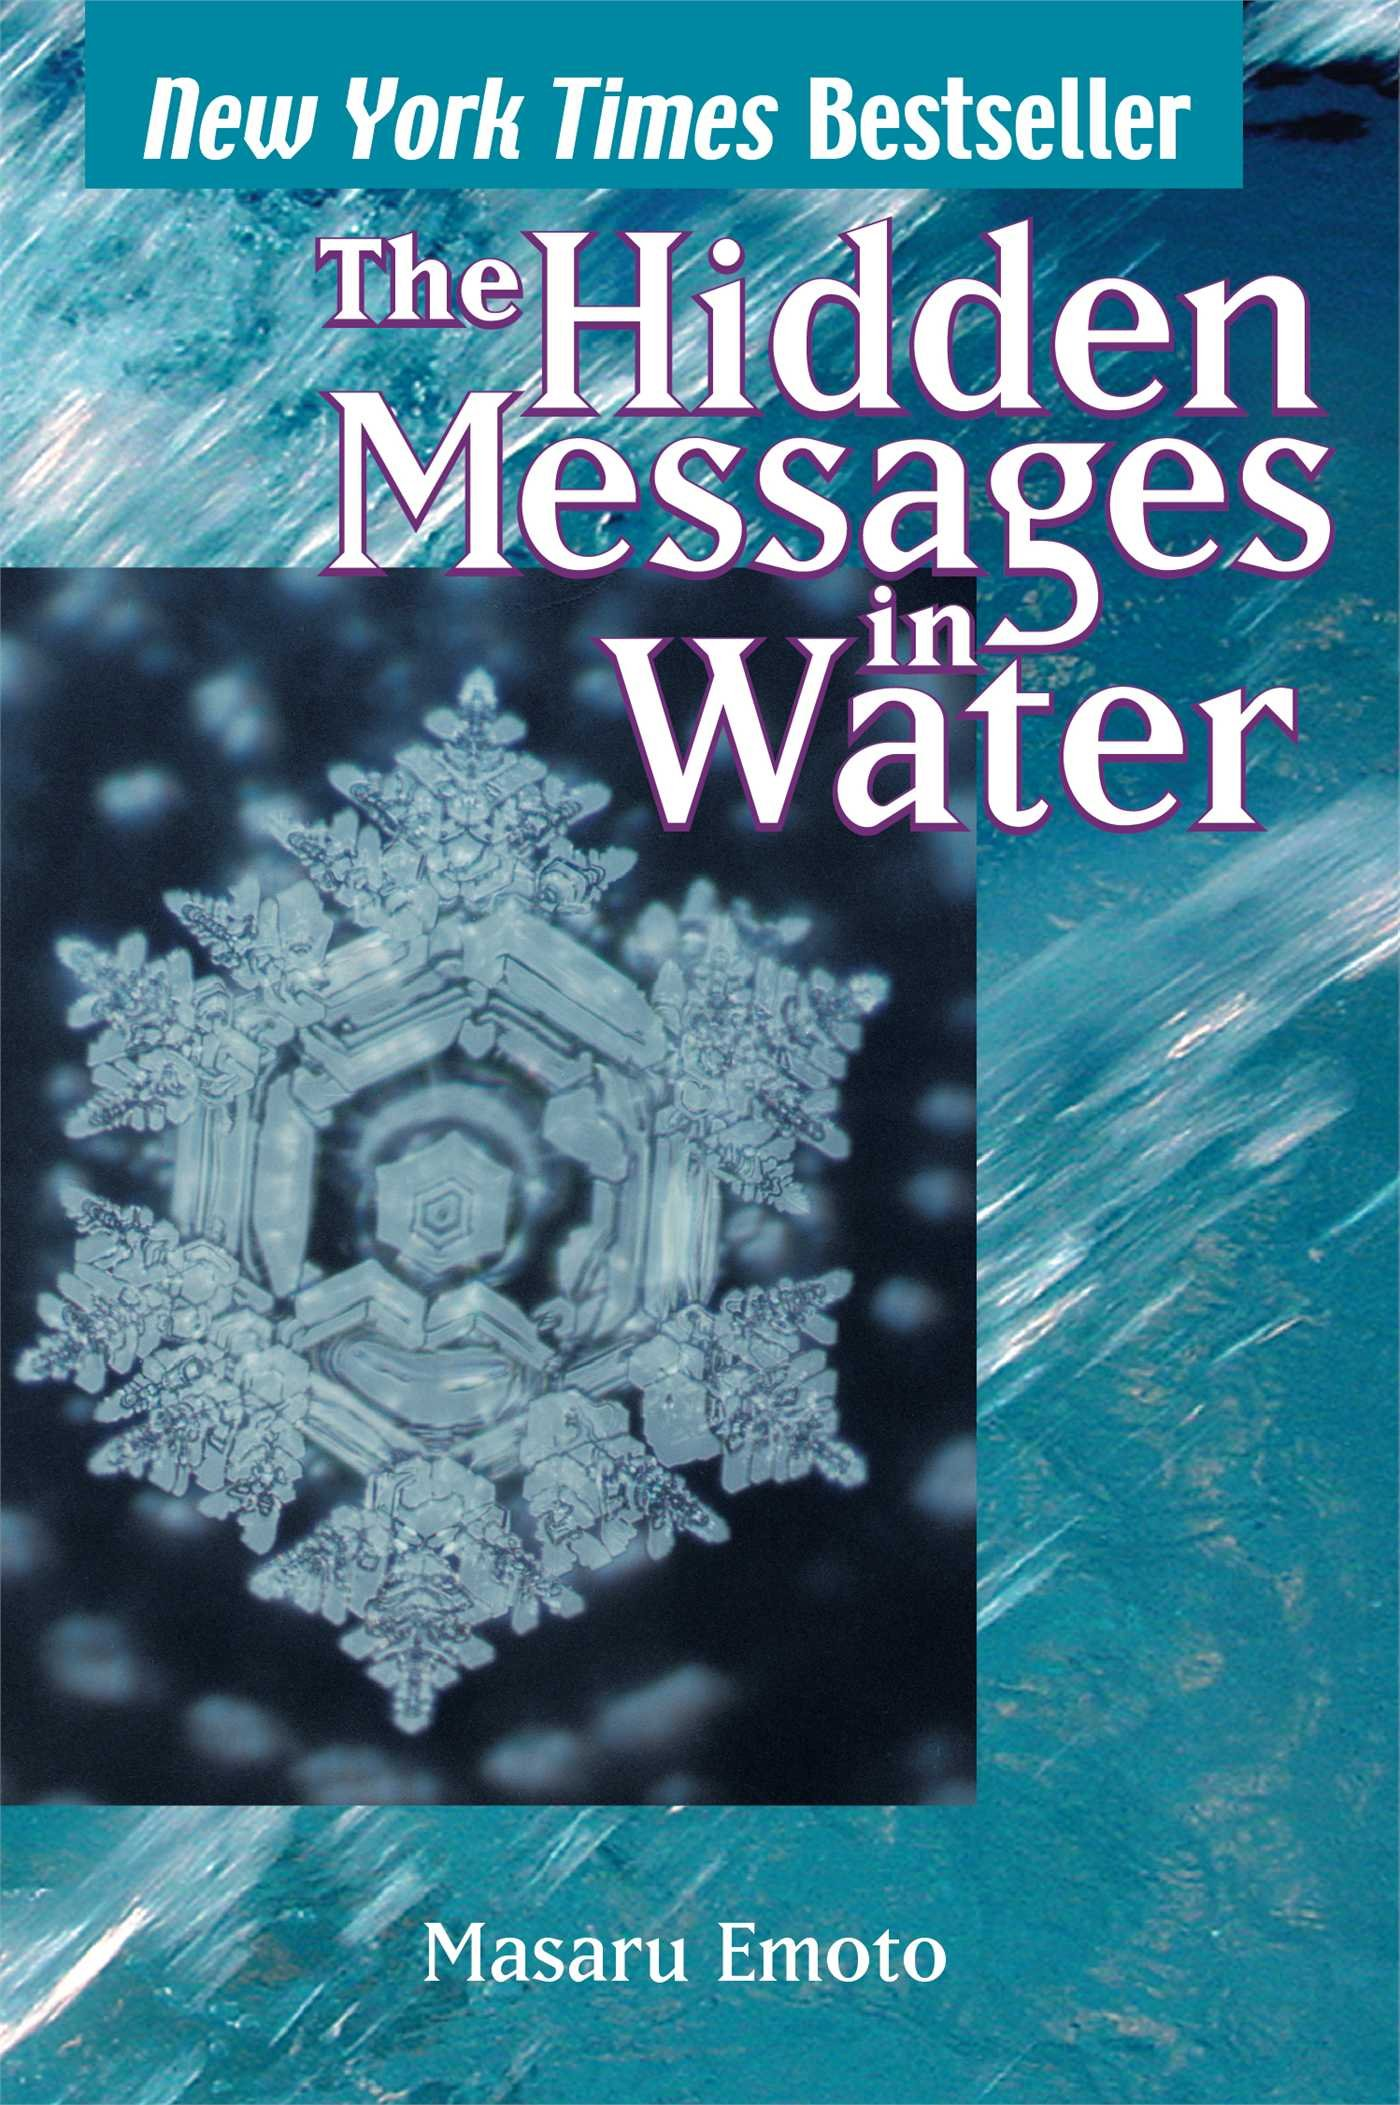 The Hidden Messages in Water Masaru Emoto Amazon